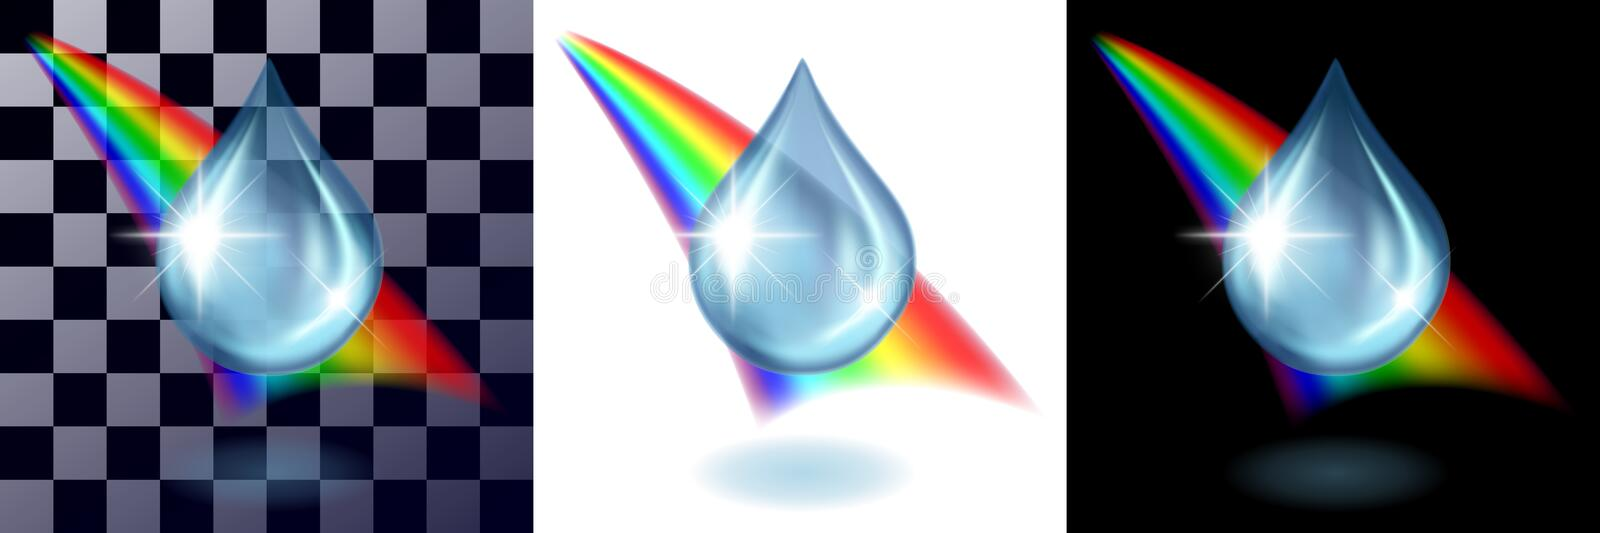 Water drop and raibow on black and white stock illustration